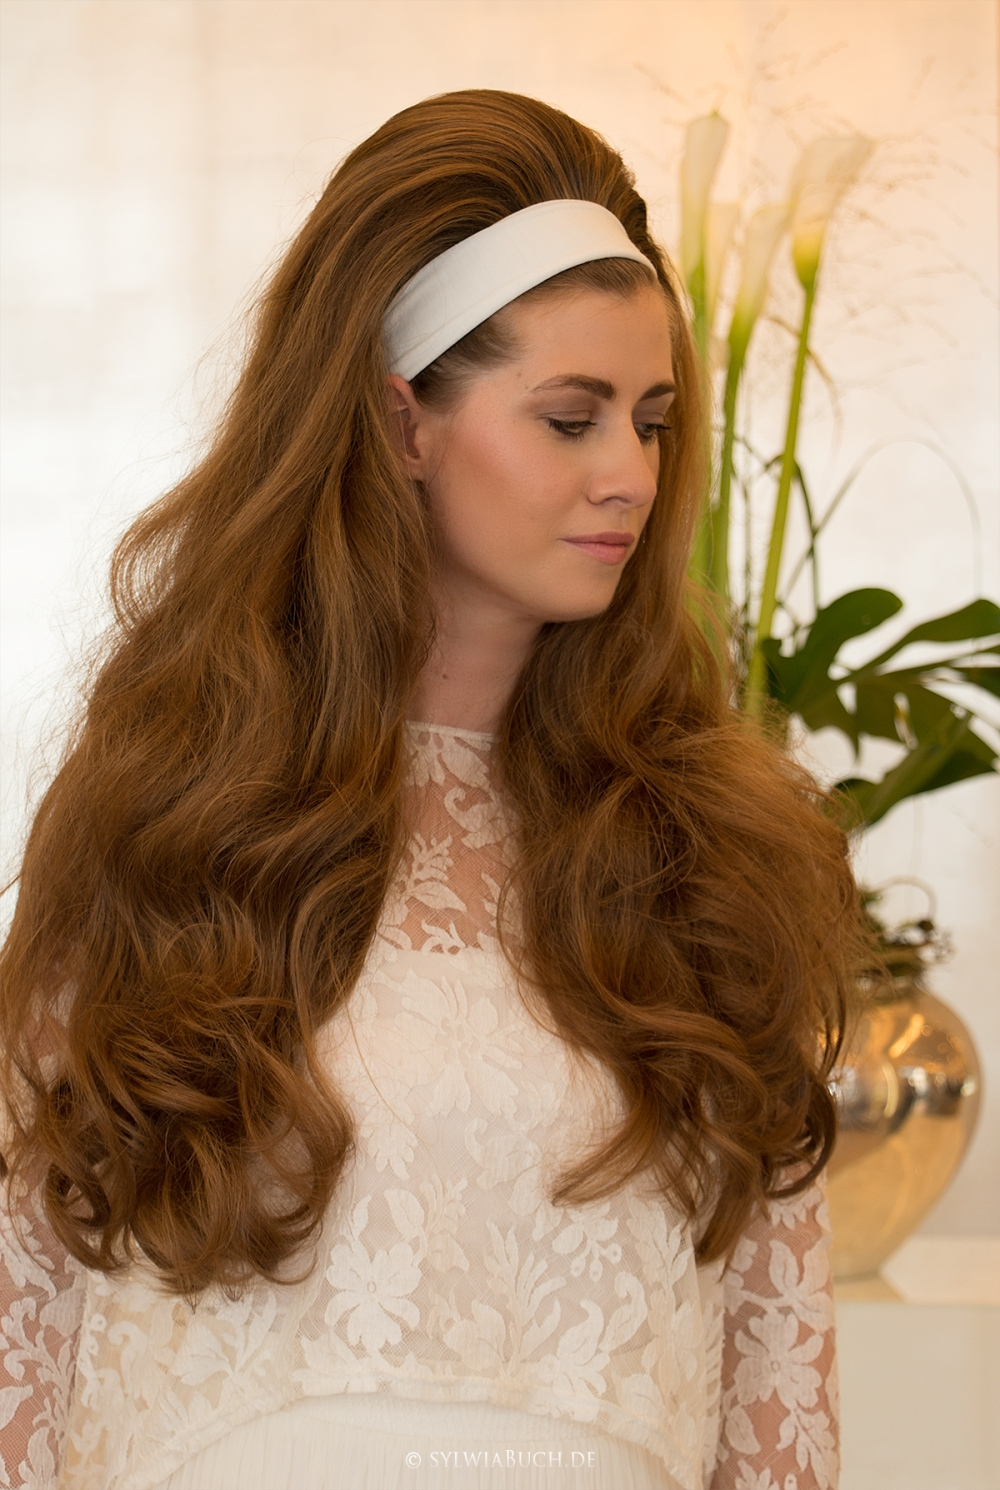 Volume Hair Weddinginspiration 70ies Wedding big hair bridalhair BineLovesLife